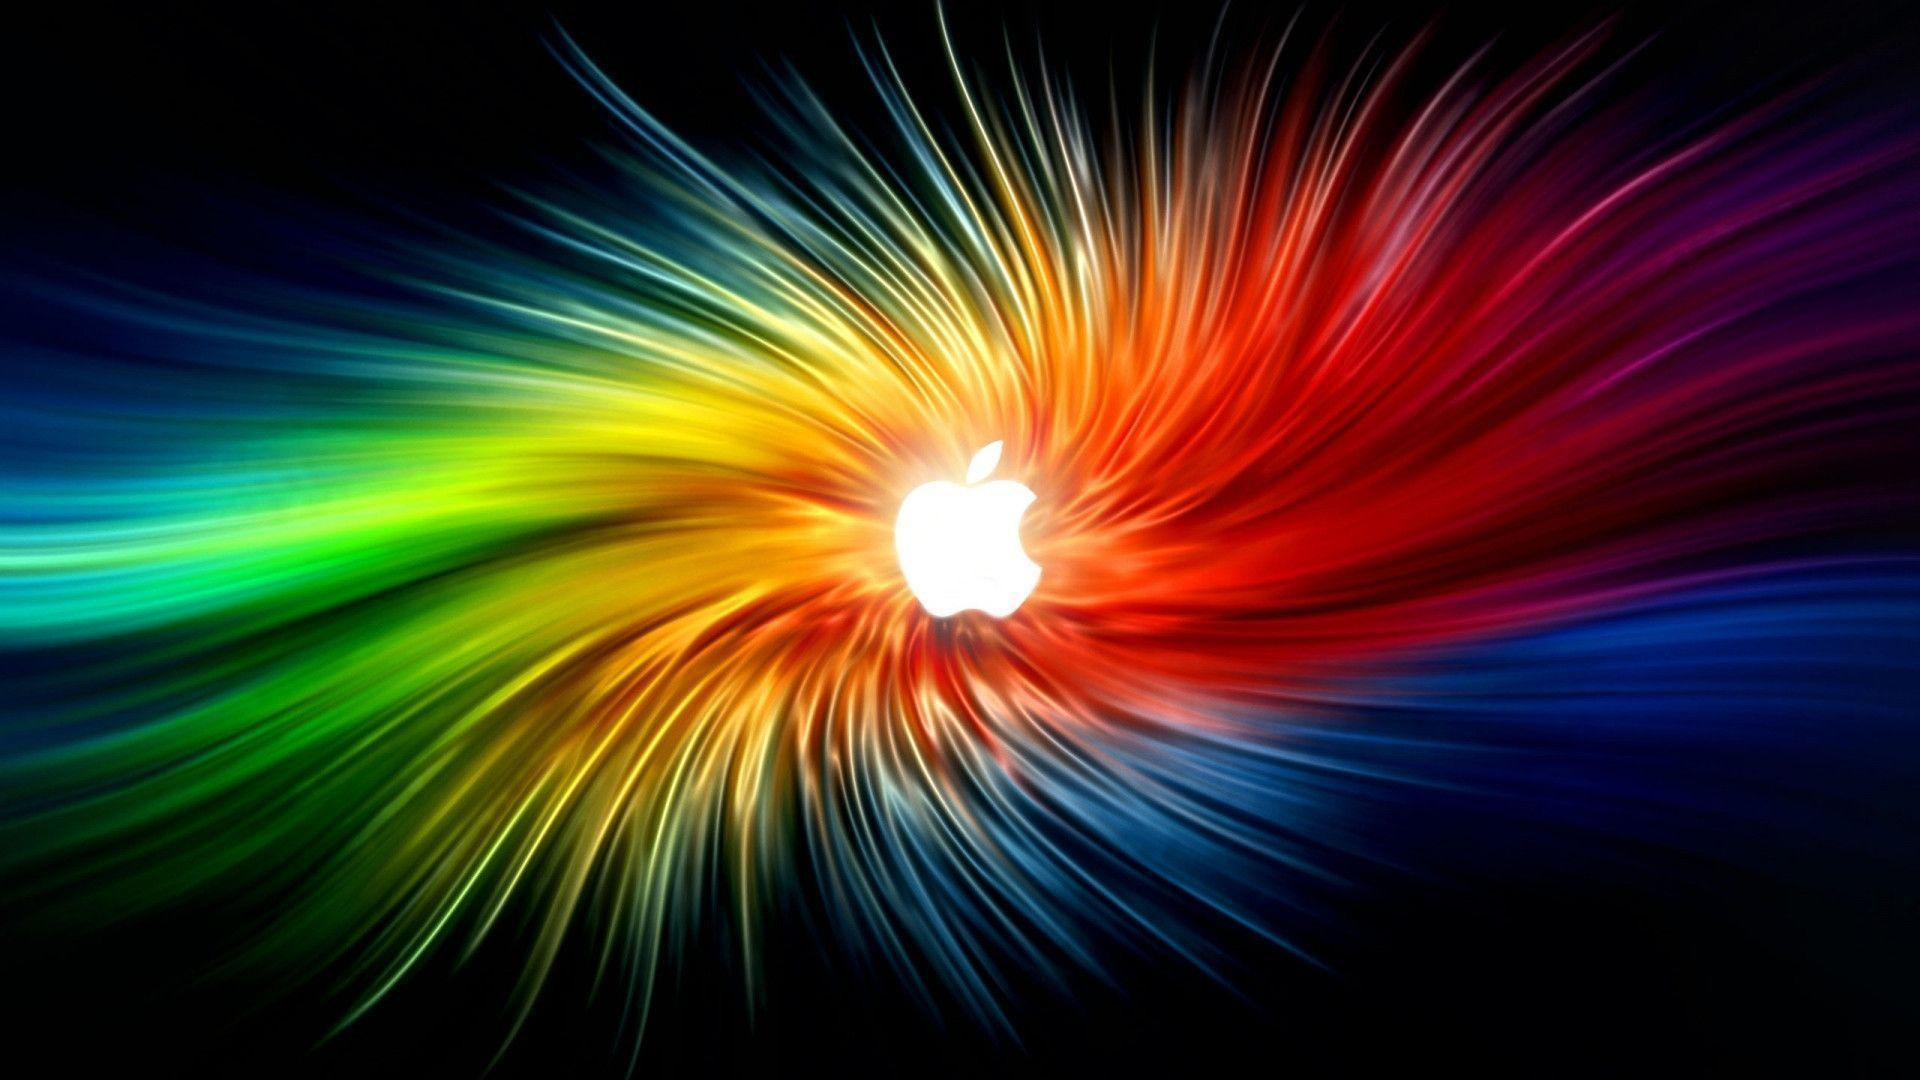 Cool Apple Backgrounds - Wallpaper Cave